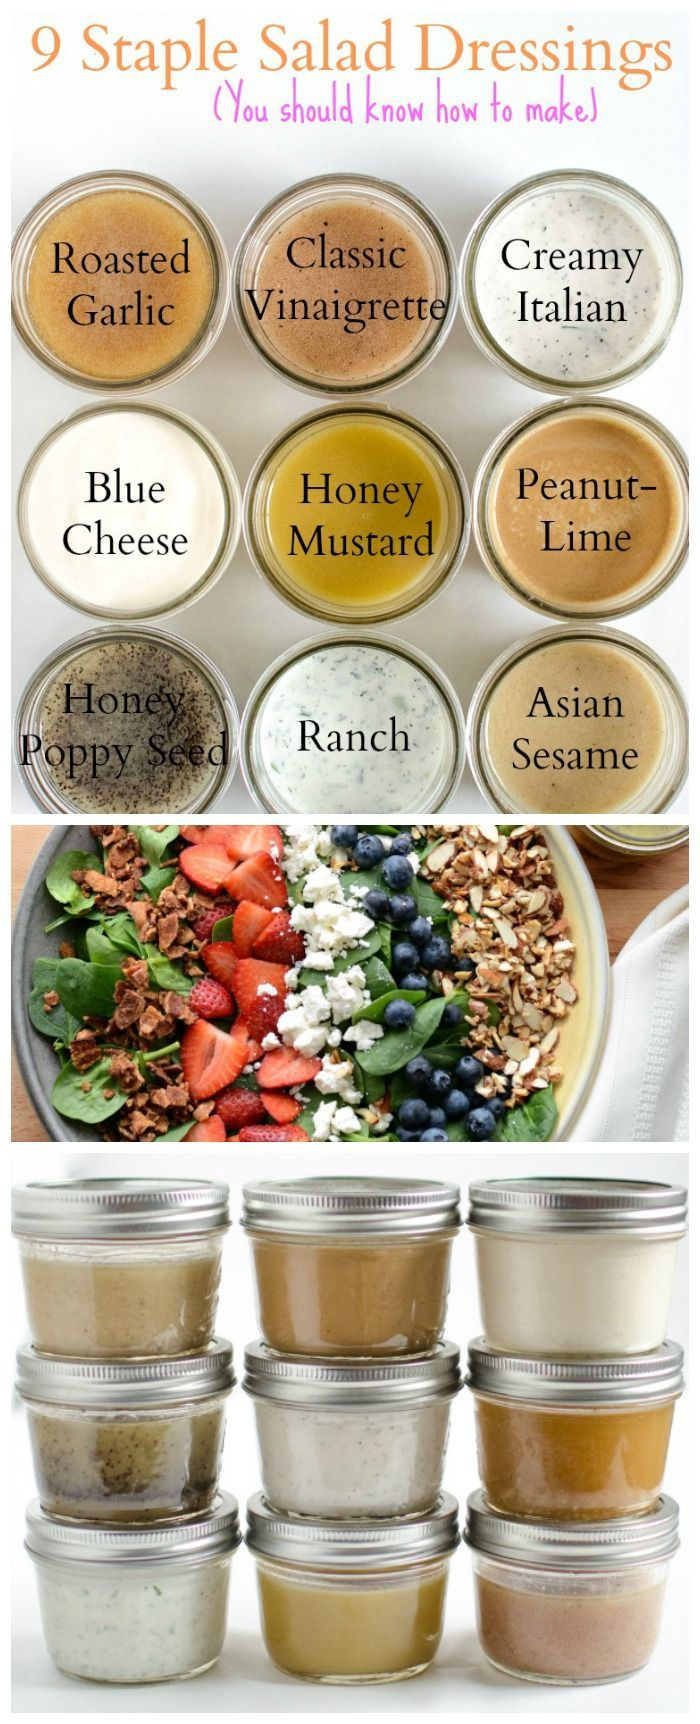 9 Staple Salad Dressings You Should Know How to Make